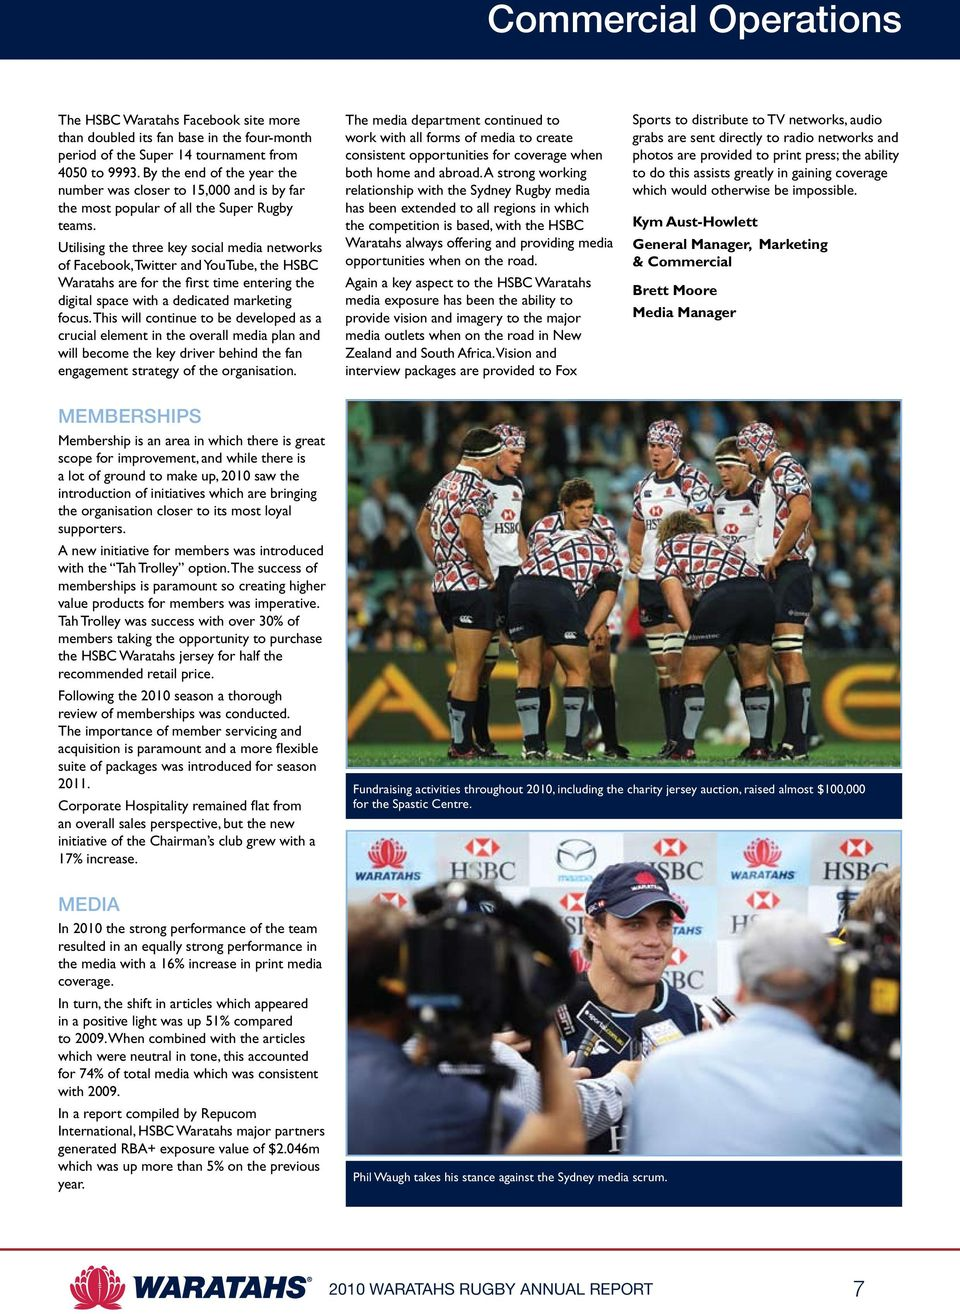 Utilising the three key social media networks of Facebook, Twitter and YouTube, the HSBC Waratahs are for the first time entering the digital space with a dedicated marketing focus.